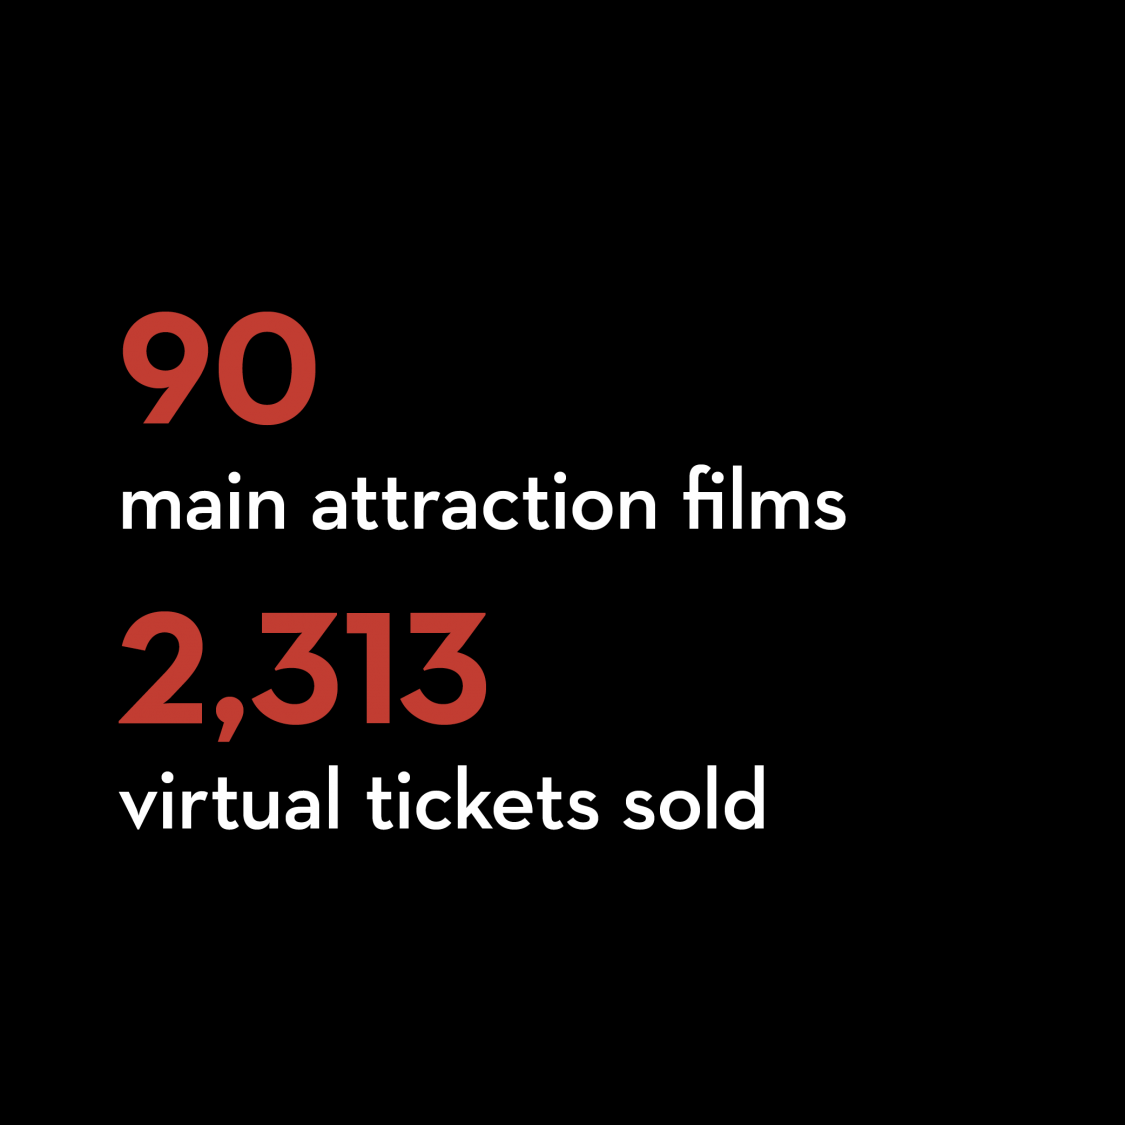 90 main attraction films 2,313 virtual tickets sold